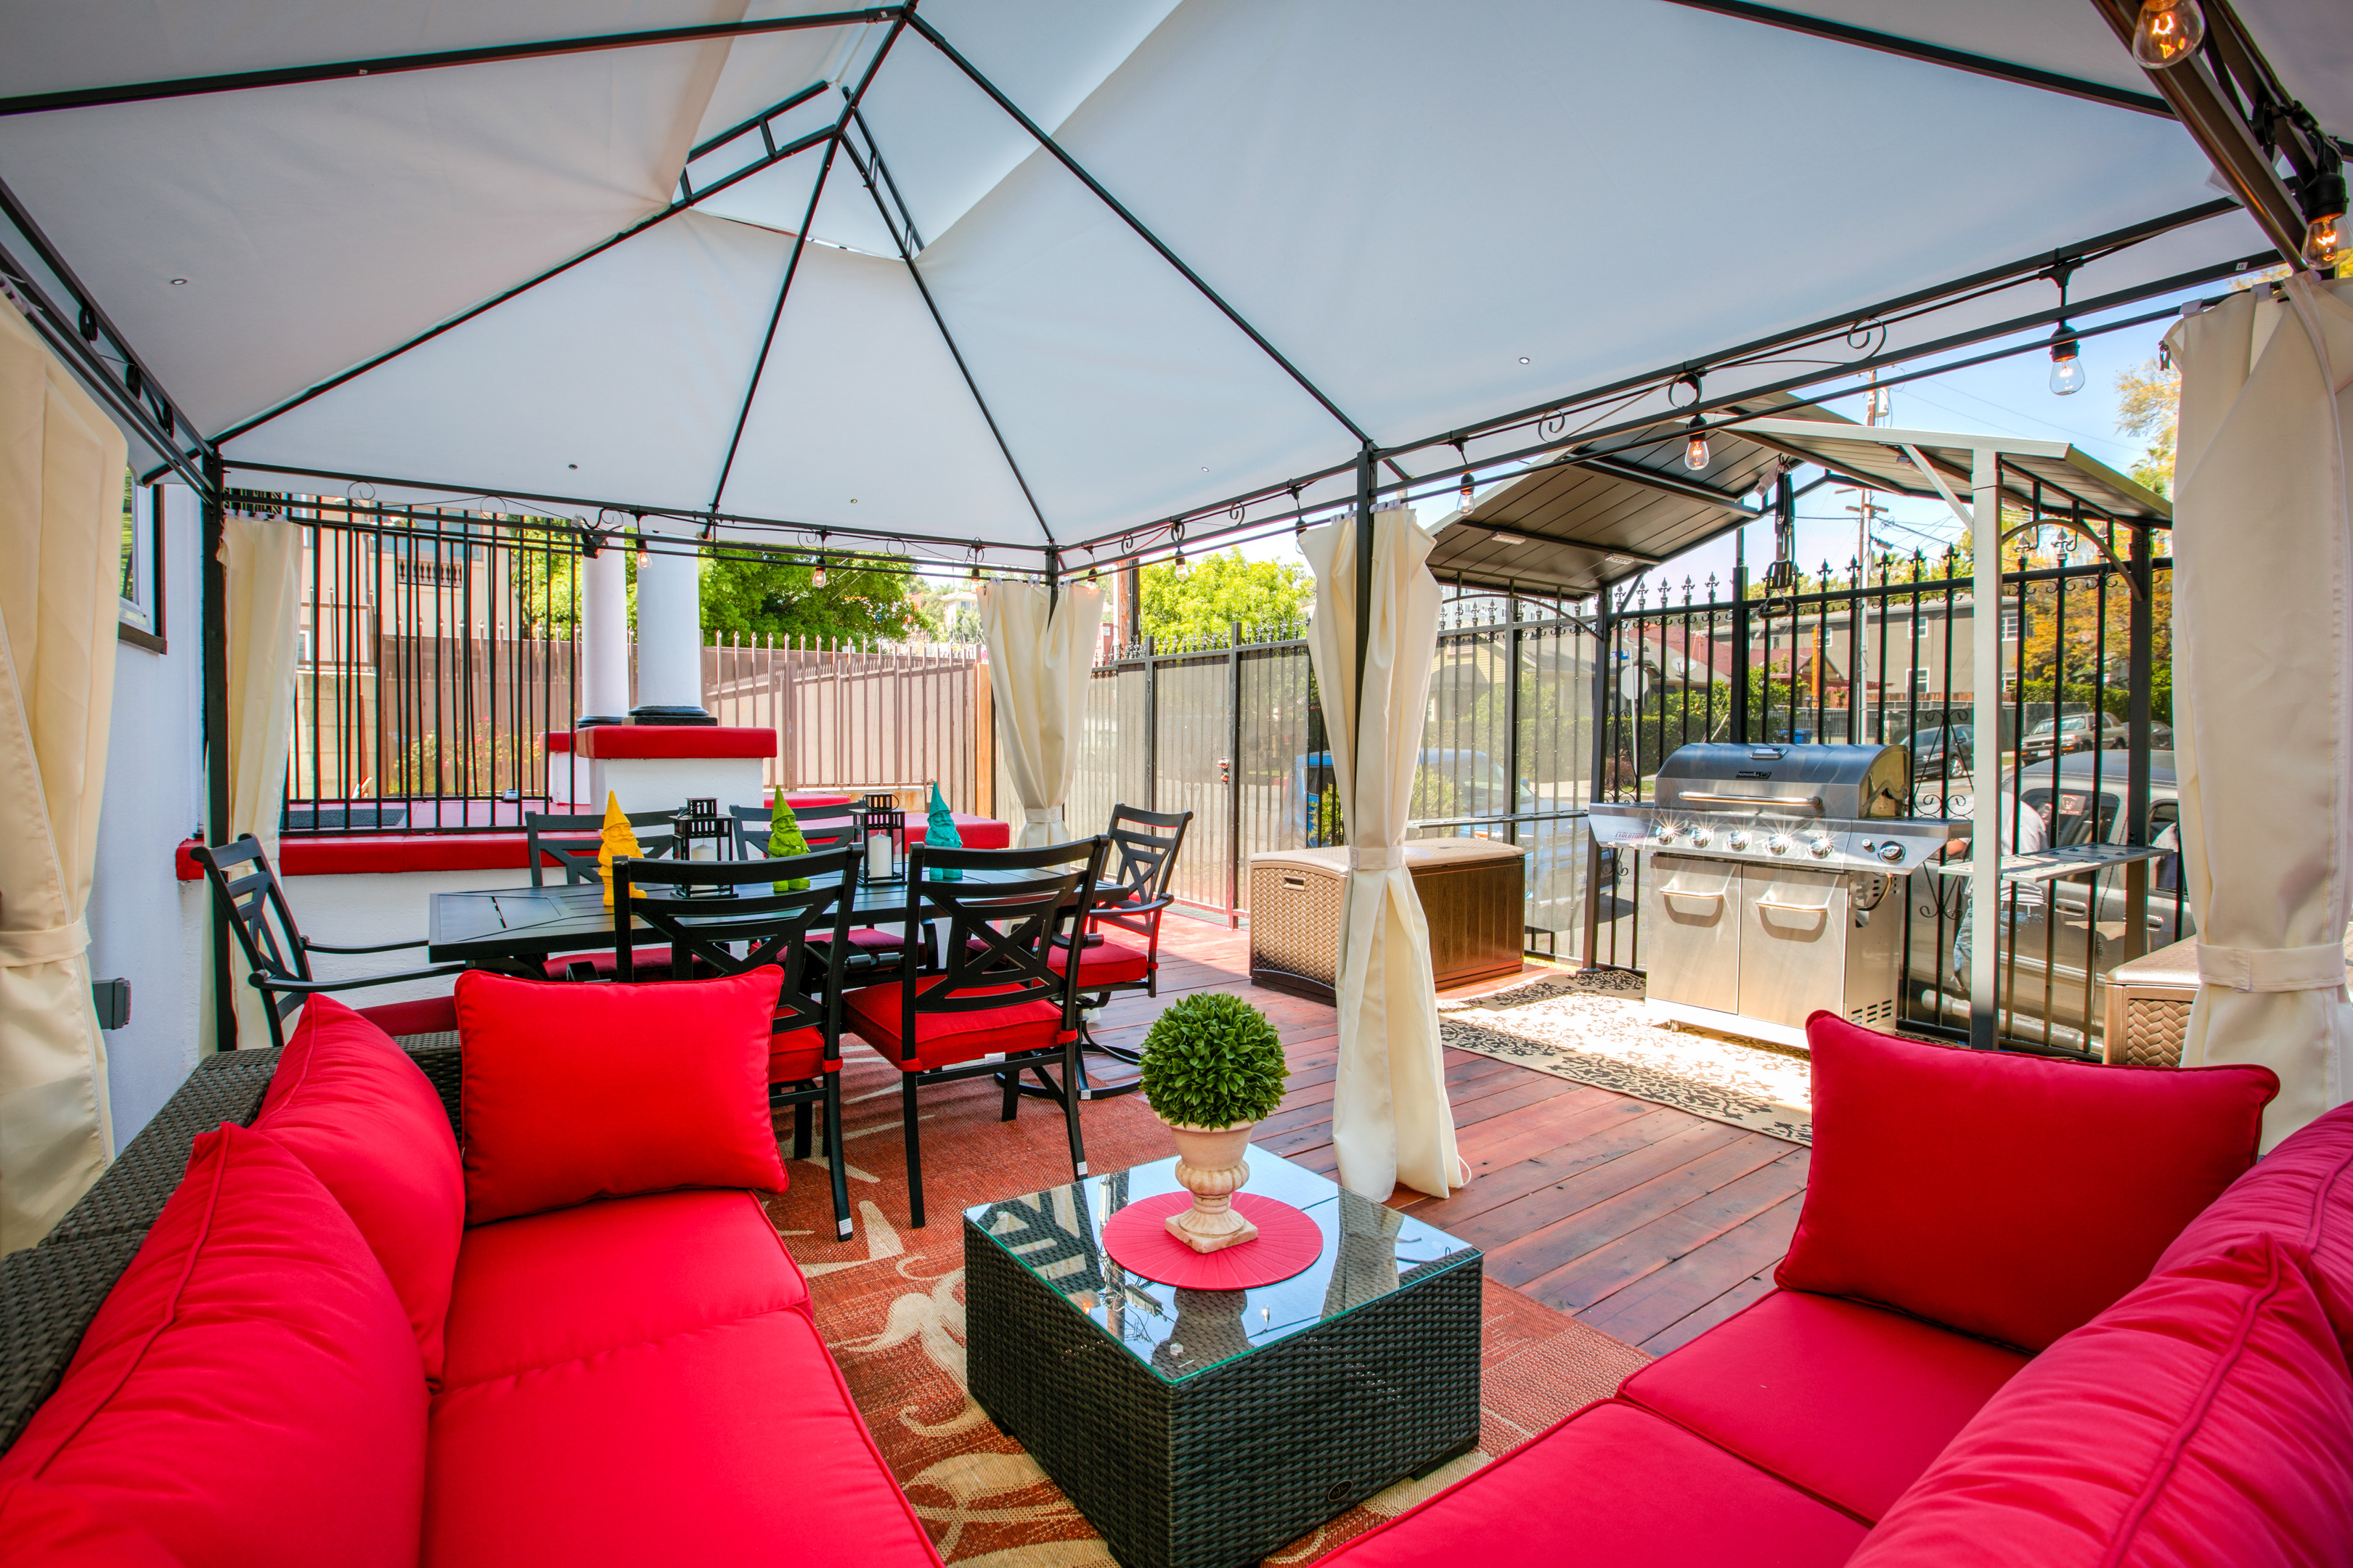 6420 dix street duplex ra150650 redawning for Los angeles holiday rental